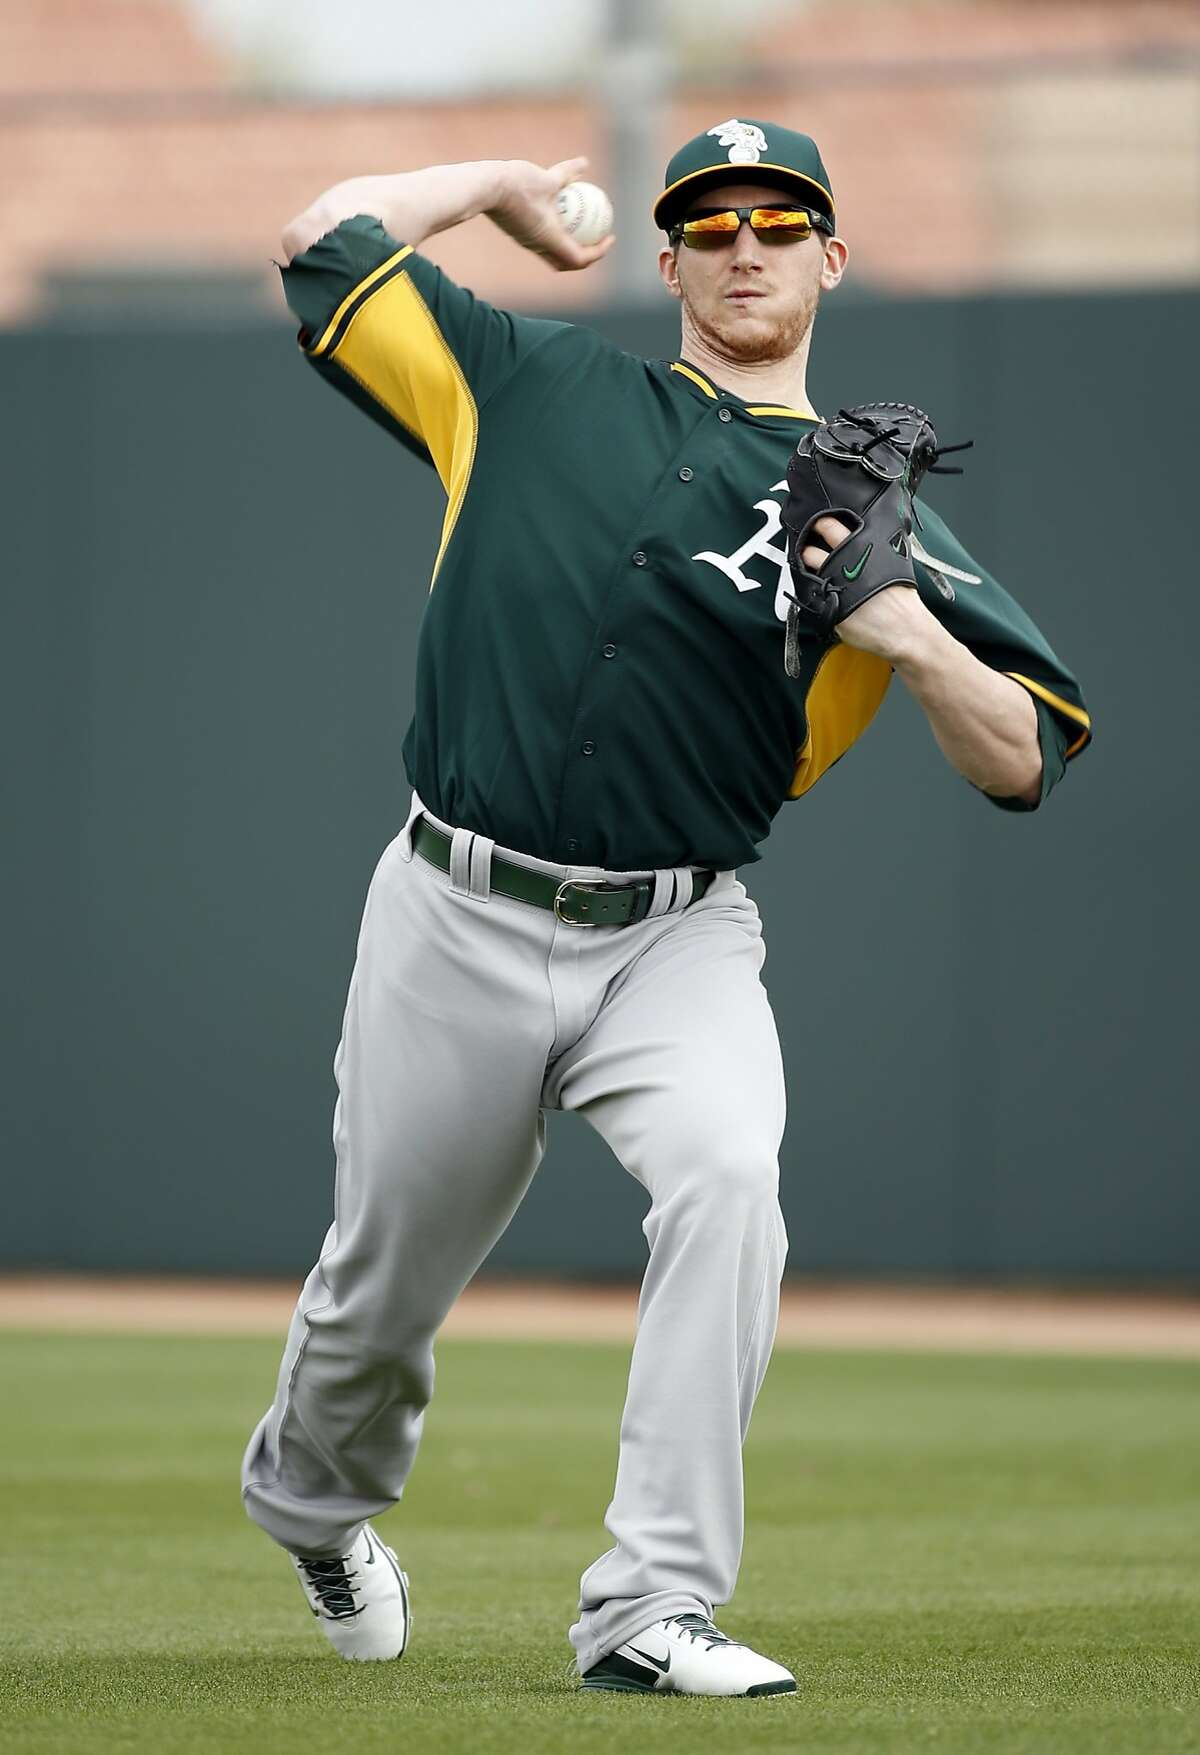 Oakland A's Jarrod Parker during Spring Training in Mesa, Arizona, on Monday, February 23, 2015.